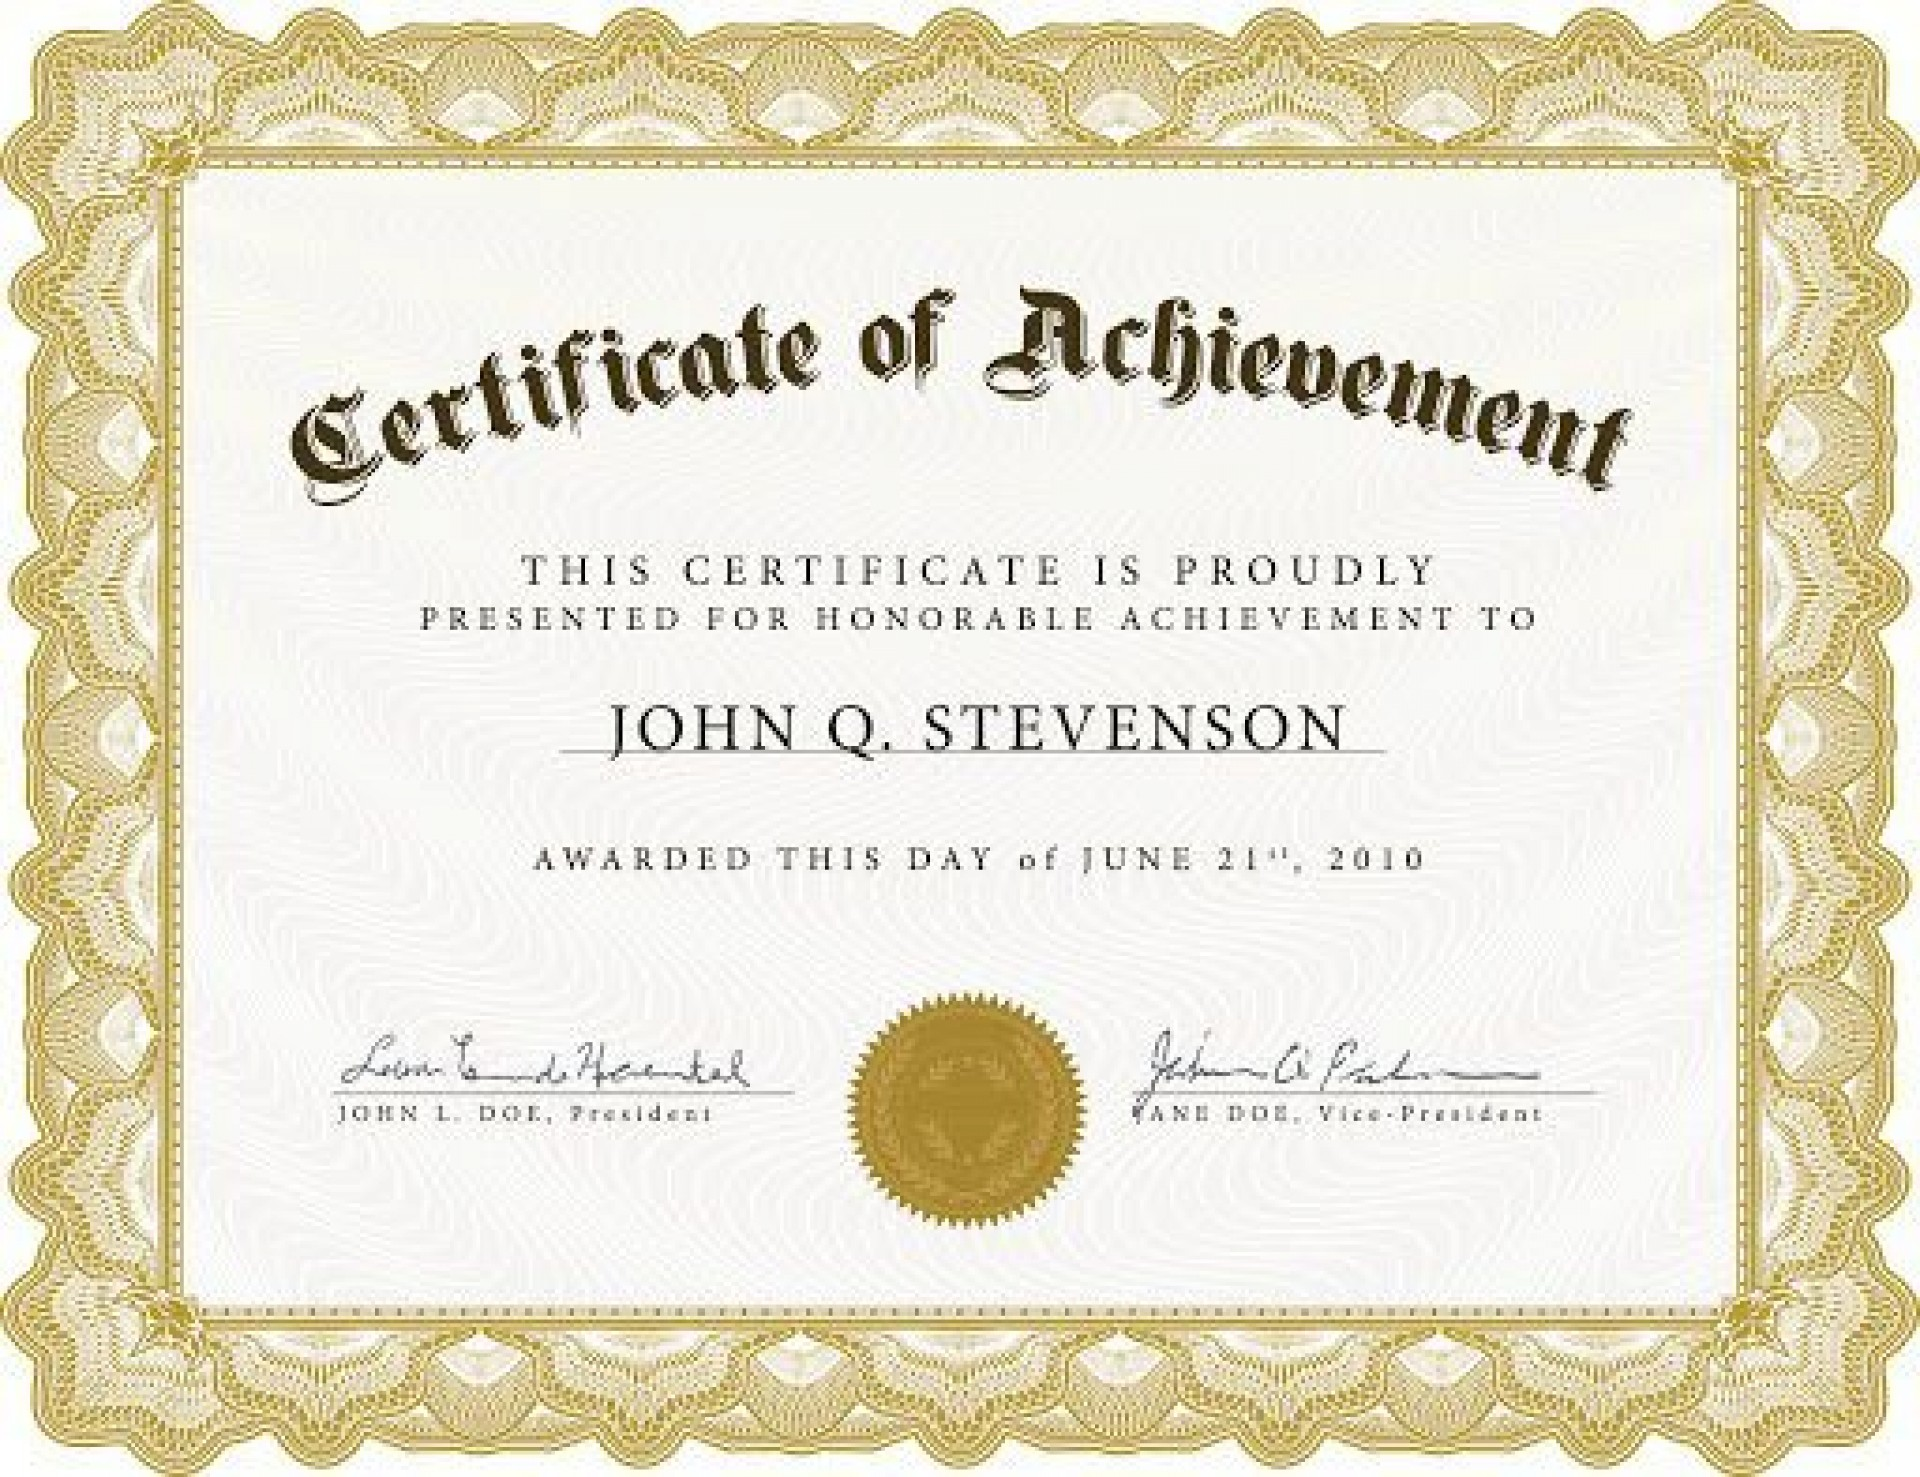 009 Dreaded Free Certificate Template Microsoft Word Concept  Of Authenticity Art Puppy Birth Marriage1920